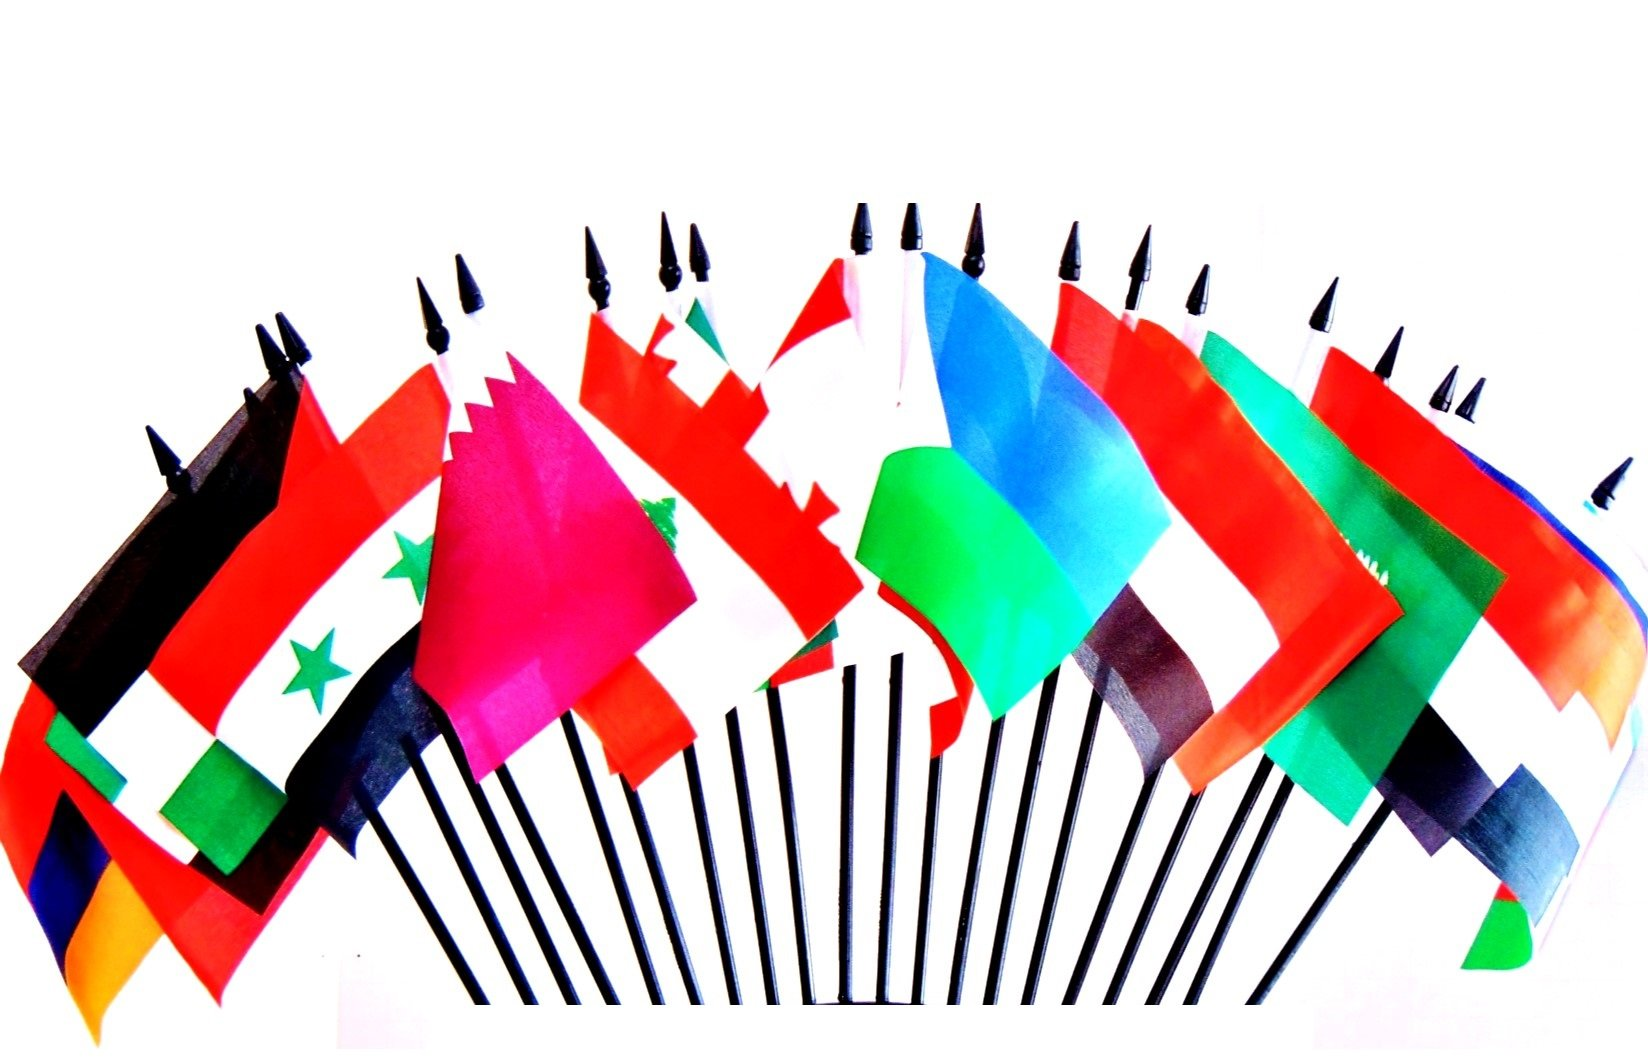 SOUTHWEST ASIA WORLD FLAG SET--20 Polyester 4''x6'' Flags, One Flag for Each Country in Southwest Asia, 4x6 Miniature Desk & Table Flags, Small Mini Stick Flags